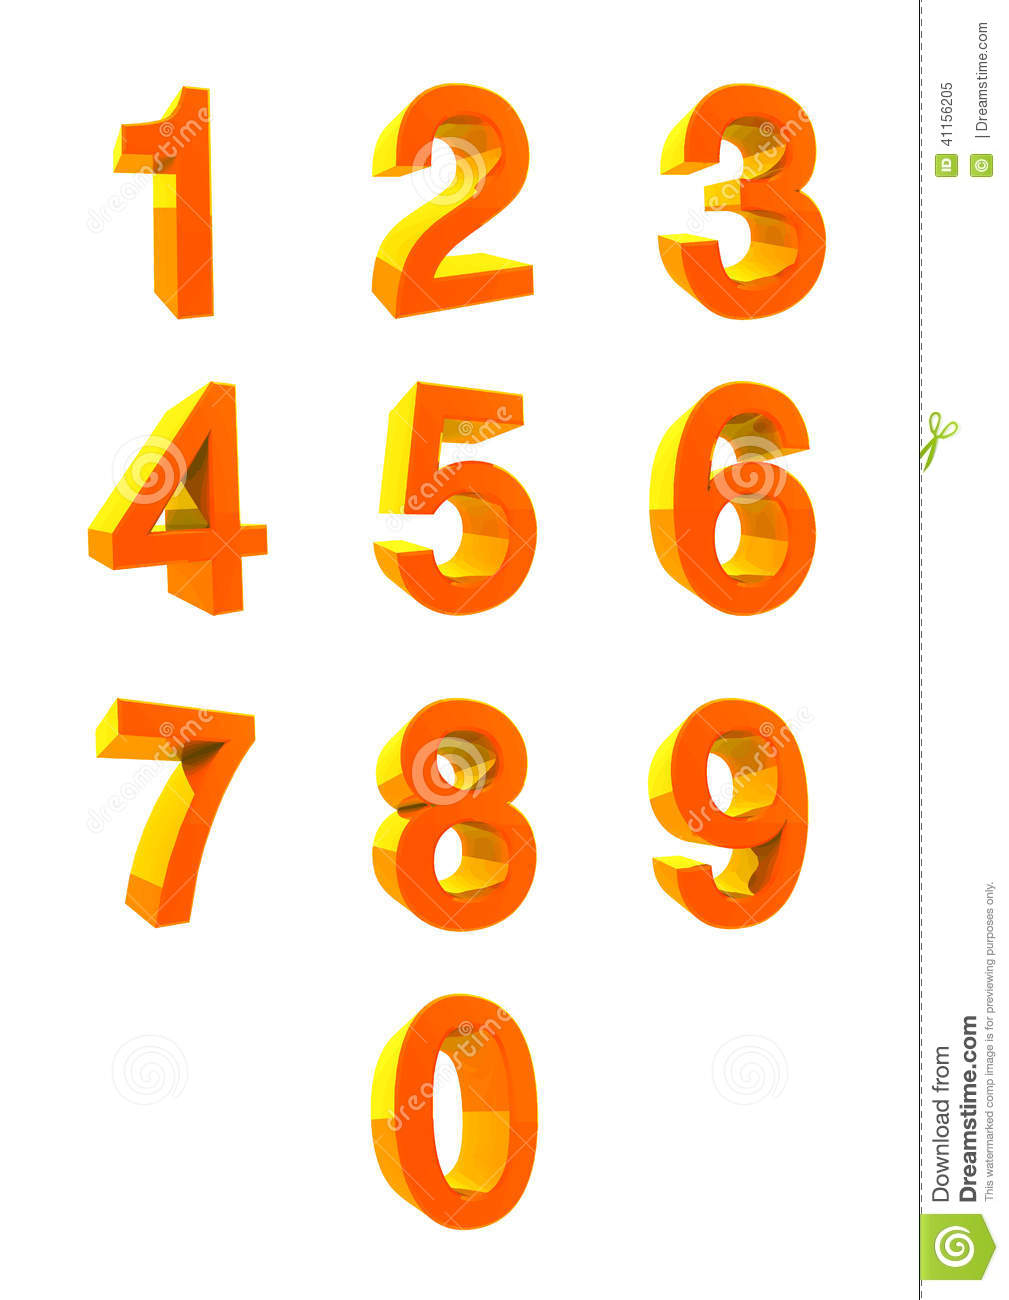 3d number collection numbers 1 2 3 4 5 6 7 8 9 0 stock